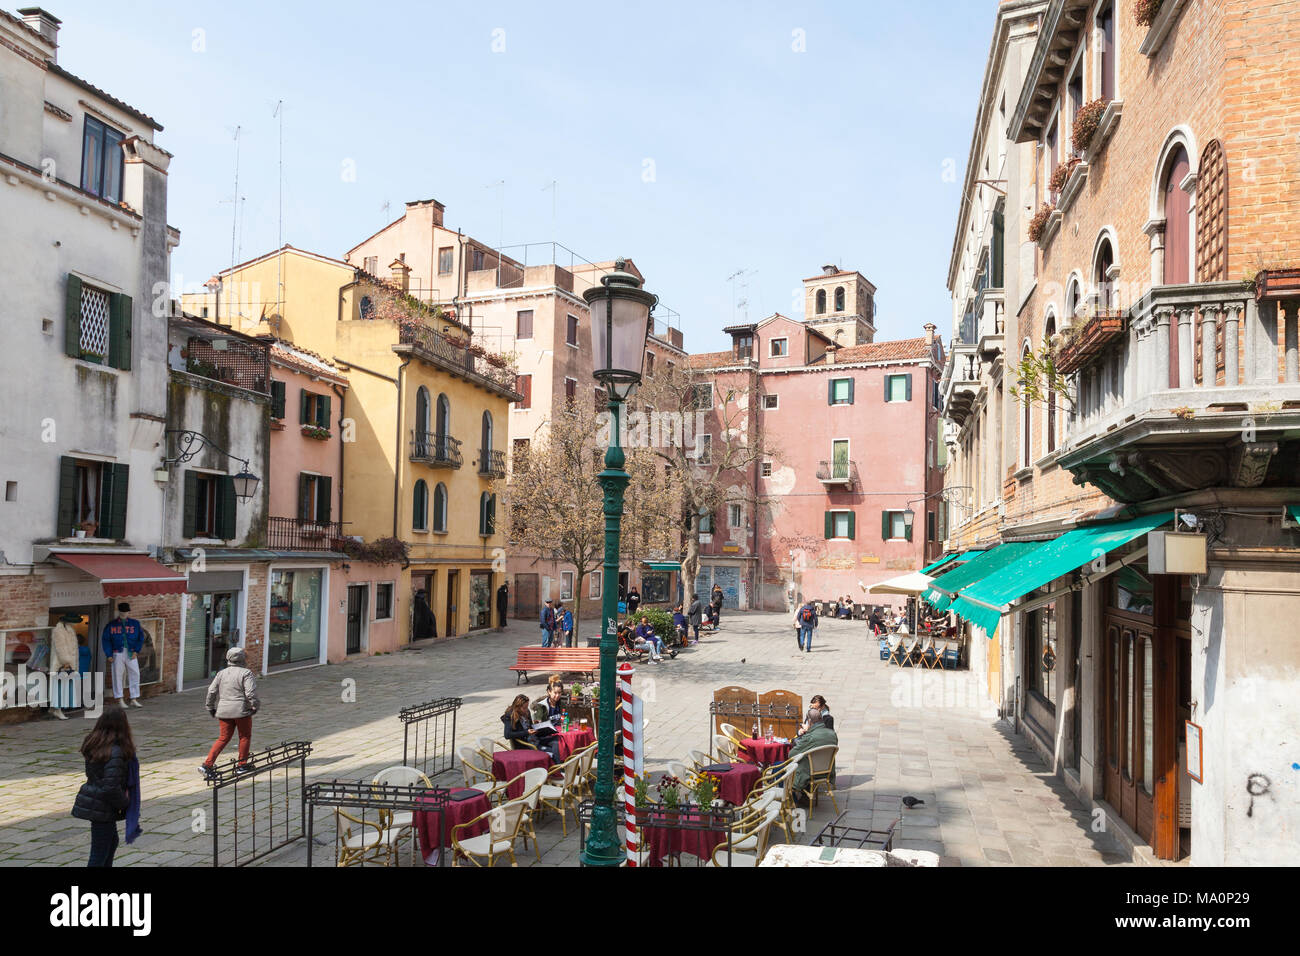 Campo Santa Maria Formosa, Cannaregio, Venice, Veneto, Italy with tourists dining at an open air restaurant in an elevated view in winter - Stock Image